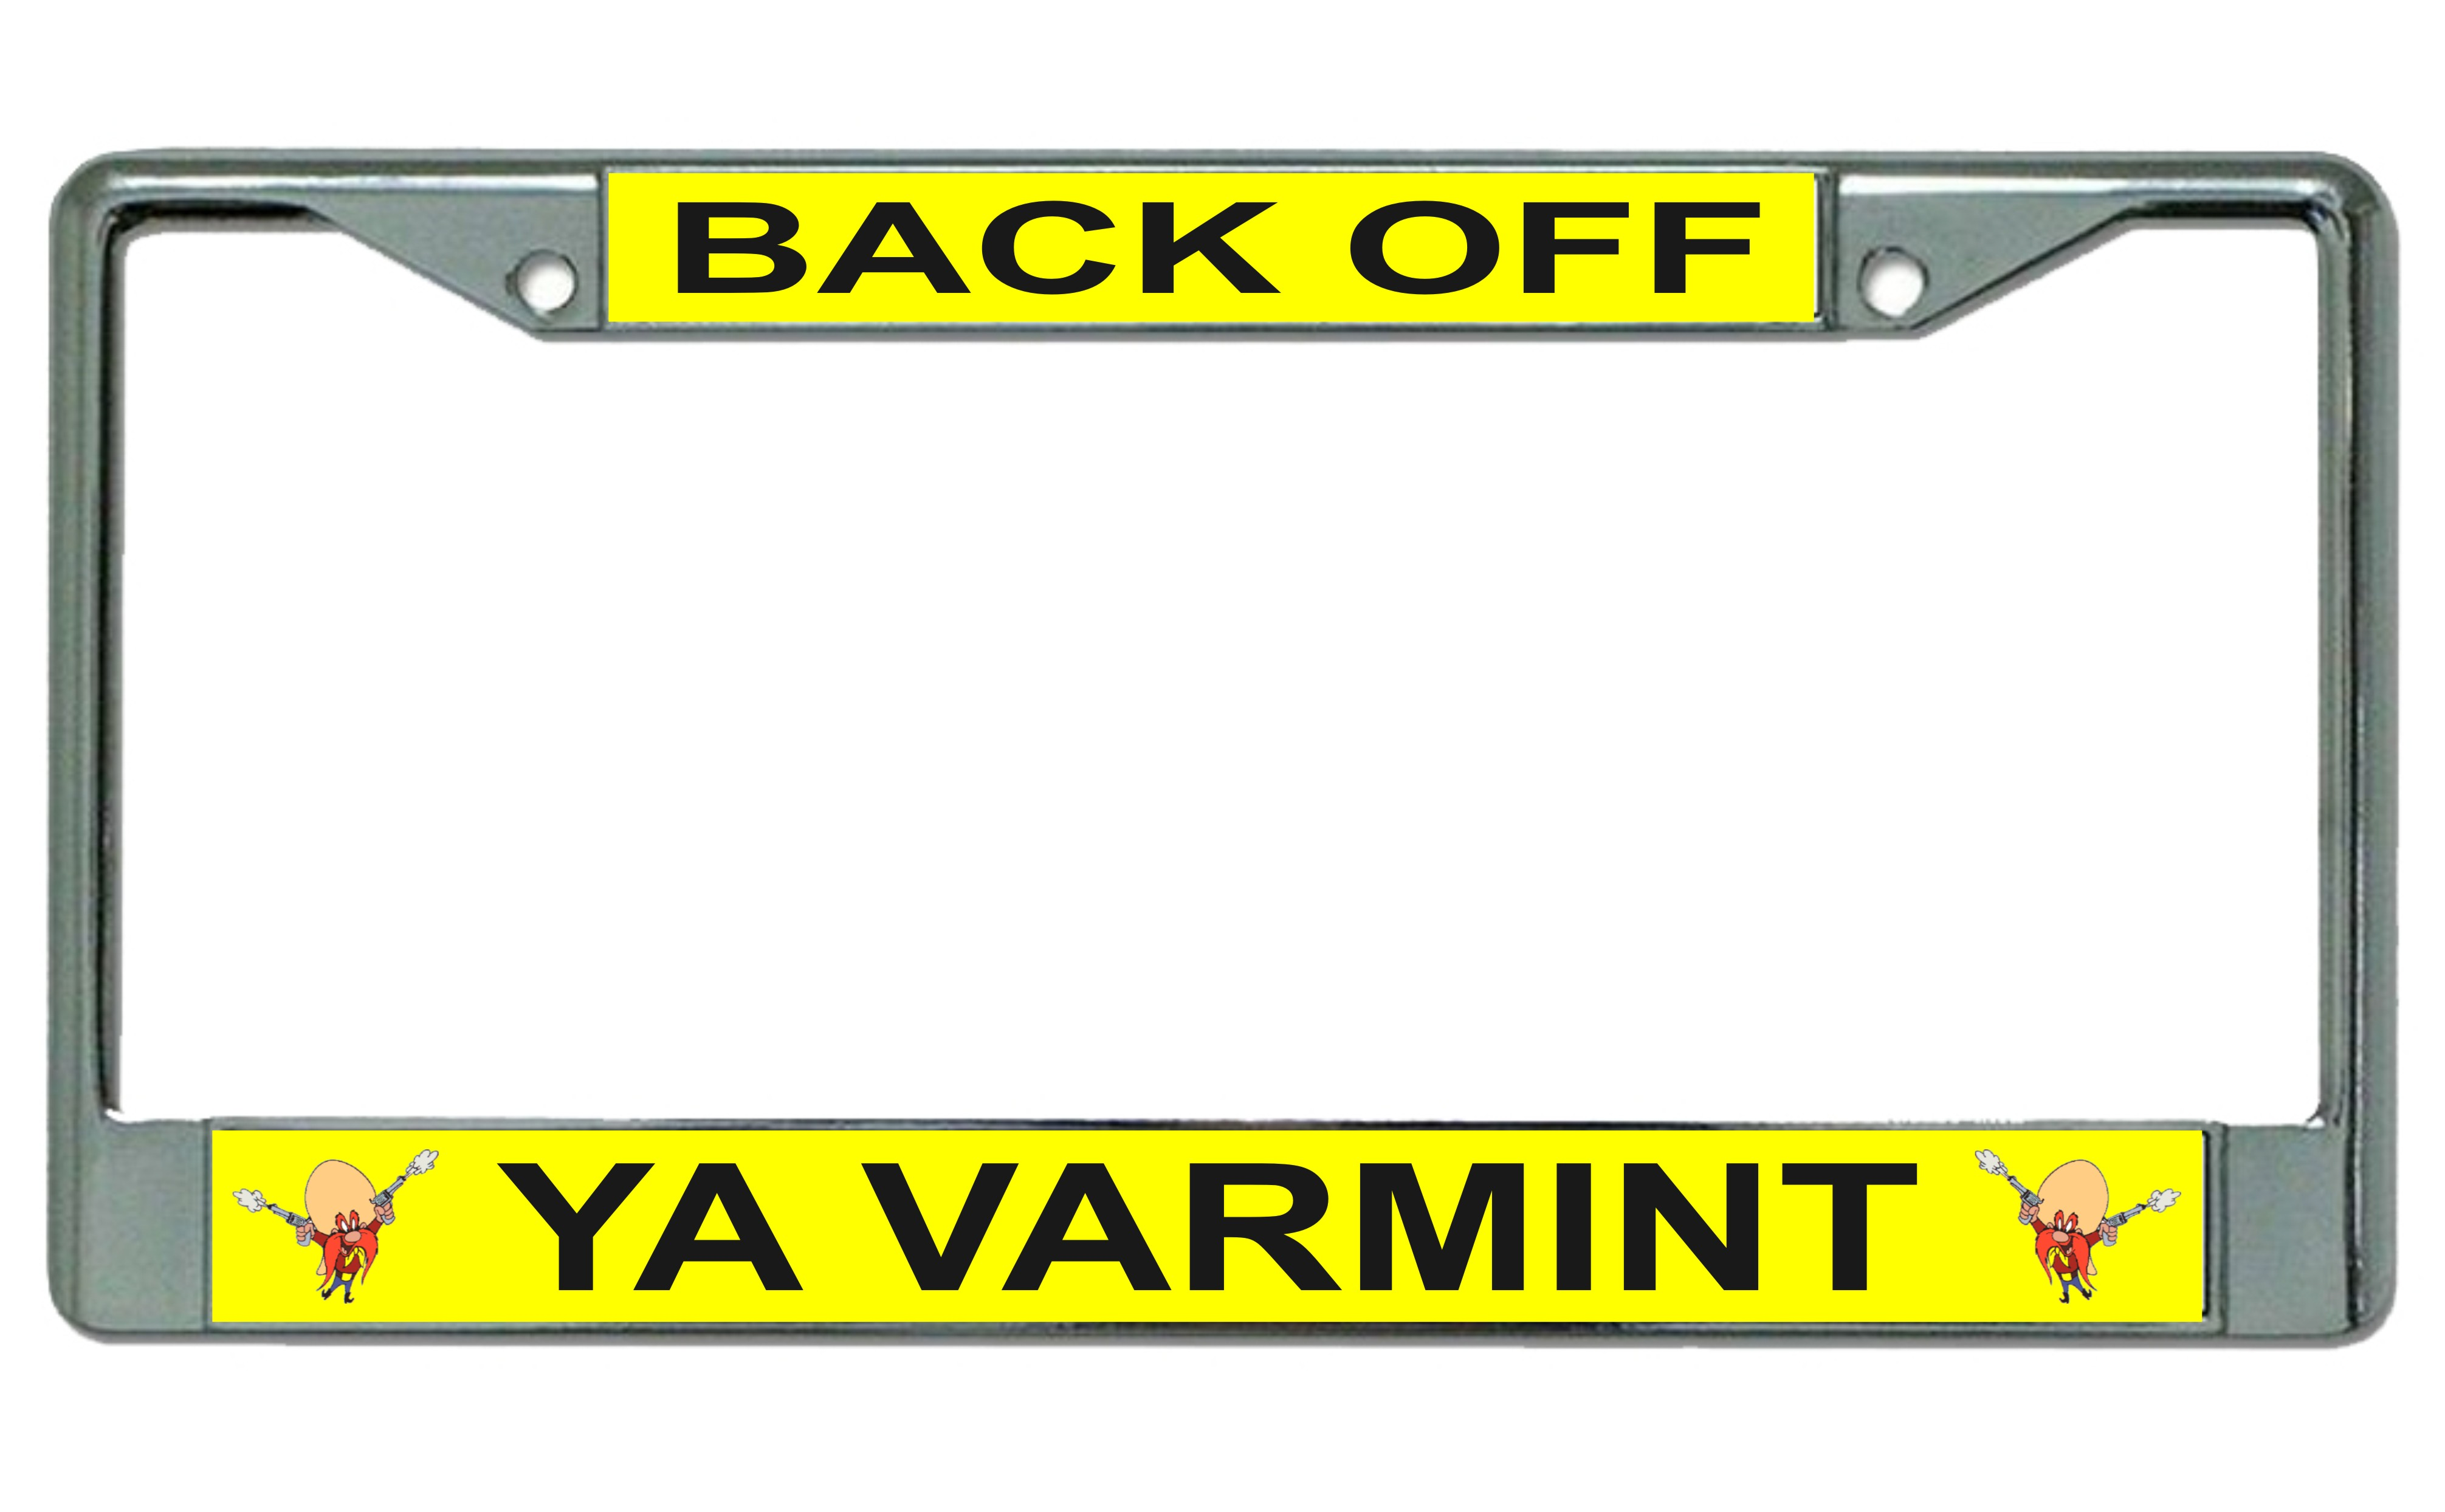 Back Off Ya Varmint Yosemite Sam Photo License Plate Frame Back Off ...